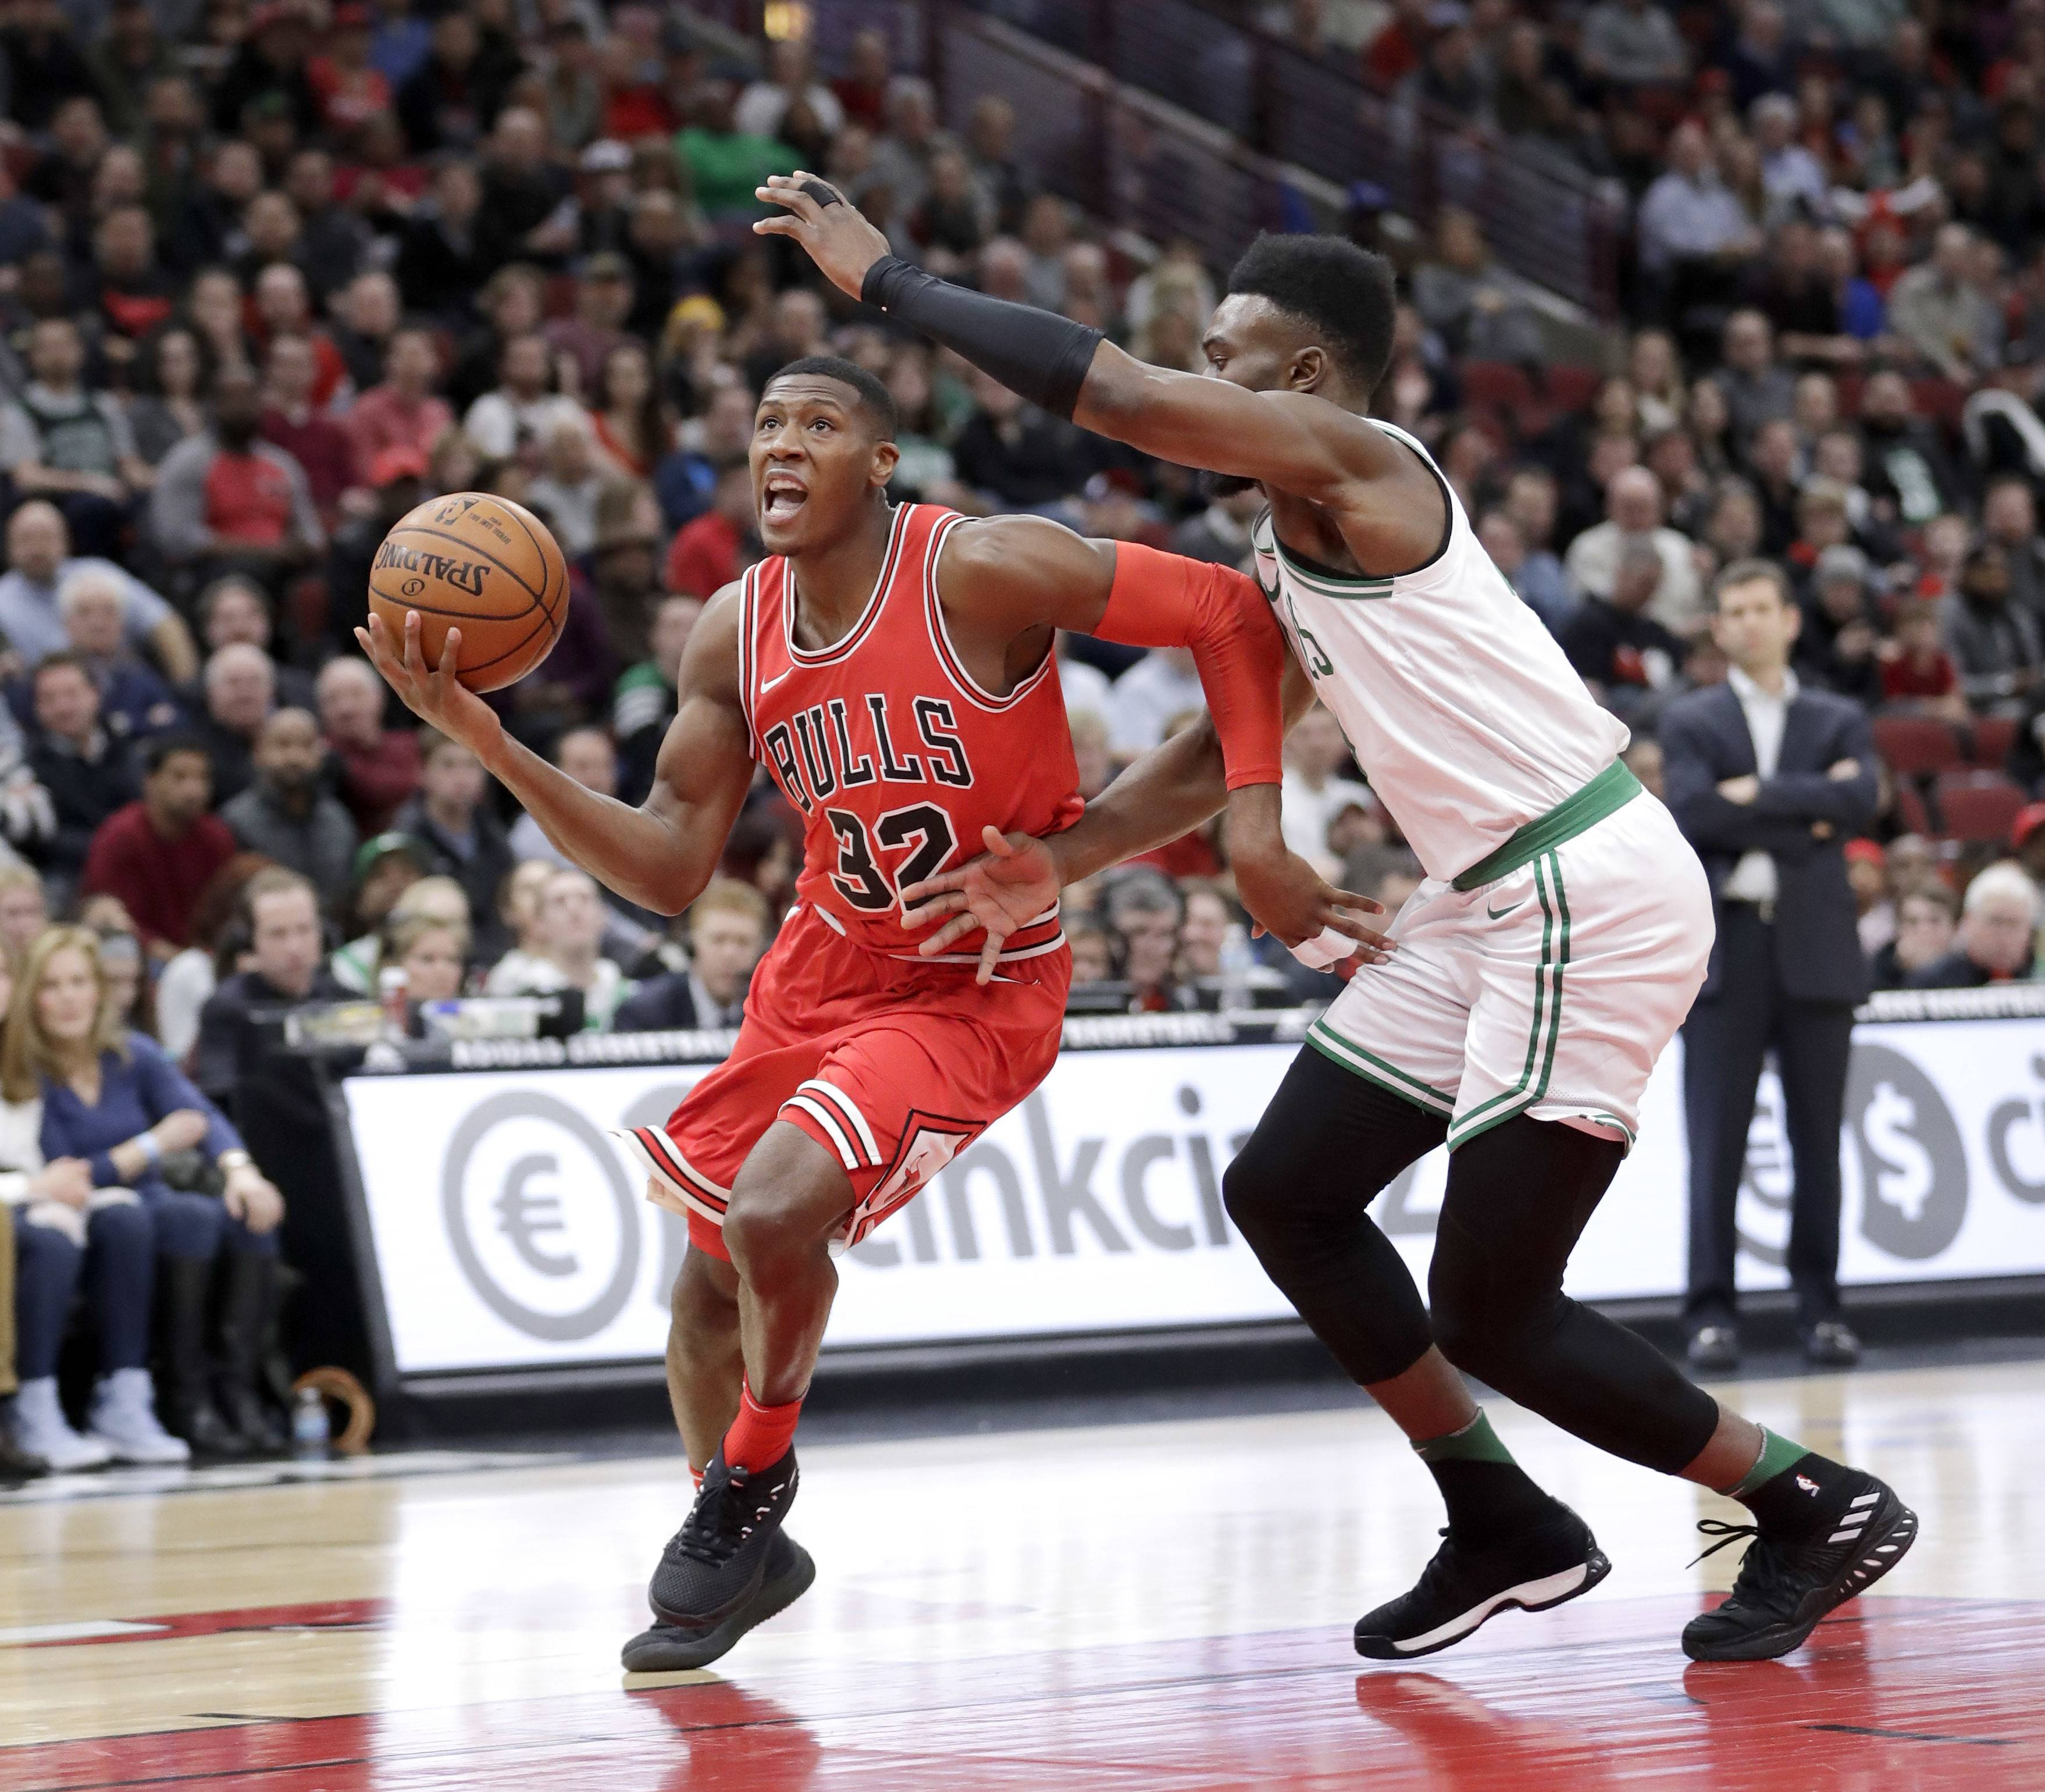 The Bulls' Kris Dunn will miss up to six weeks after injuring his knee Monday in Dallas, coach Fred Hoiberg said.